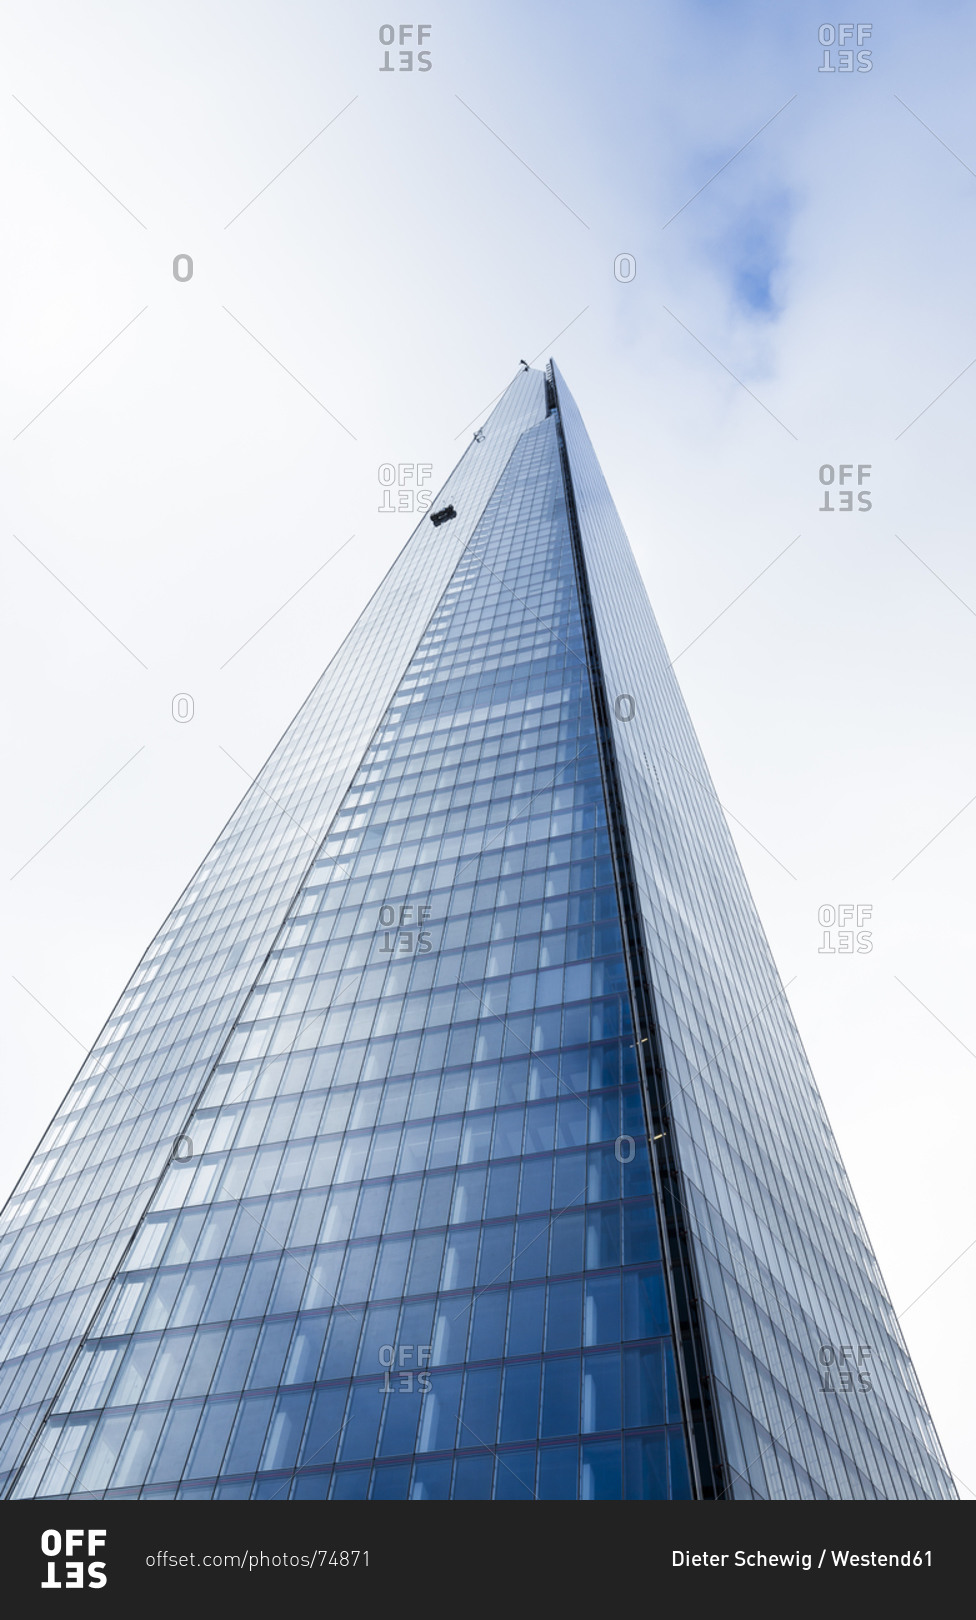 Plush Have Any View Uk Stock Photo Offset Worms View Buildings Worms View Photos dpreview Worms Eye View